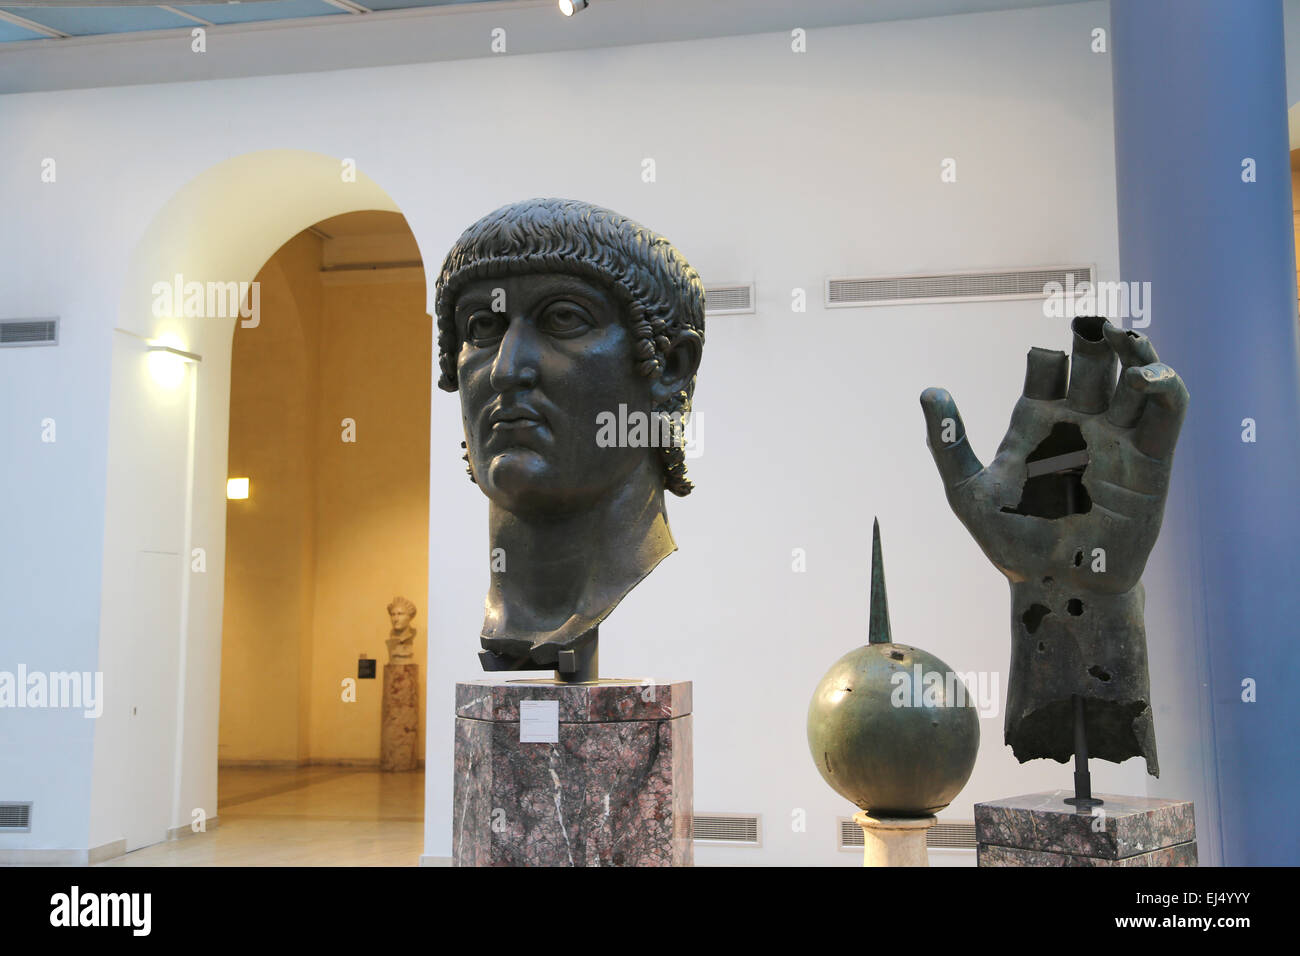 Colossal bronze head and hand of Constantine I (272-337 AD). 4th century AD. Capitoline Museums. Rome. Italy. - Stock Image